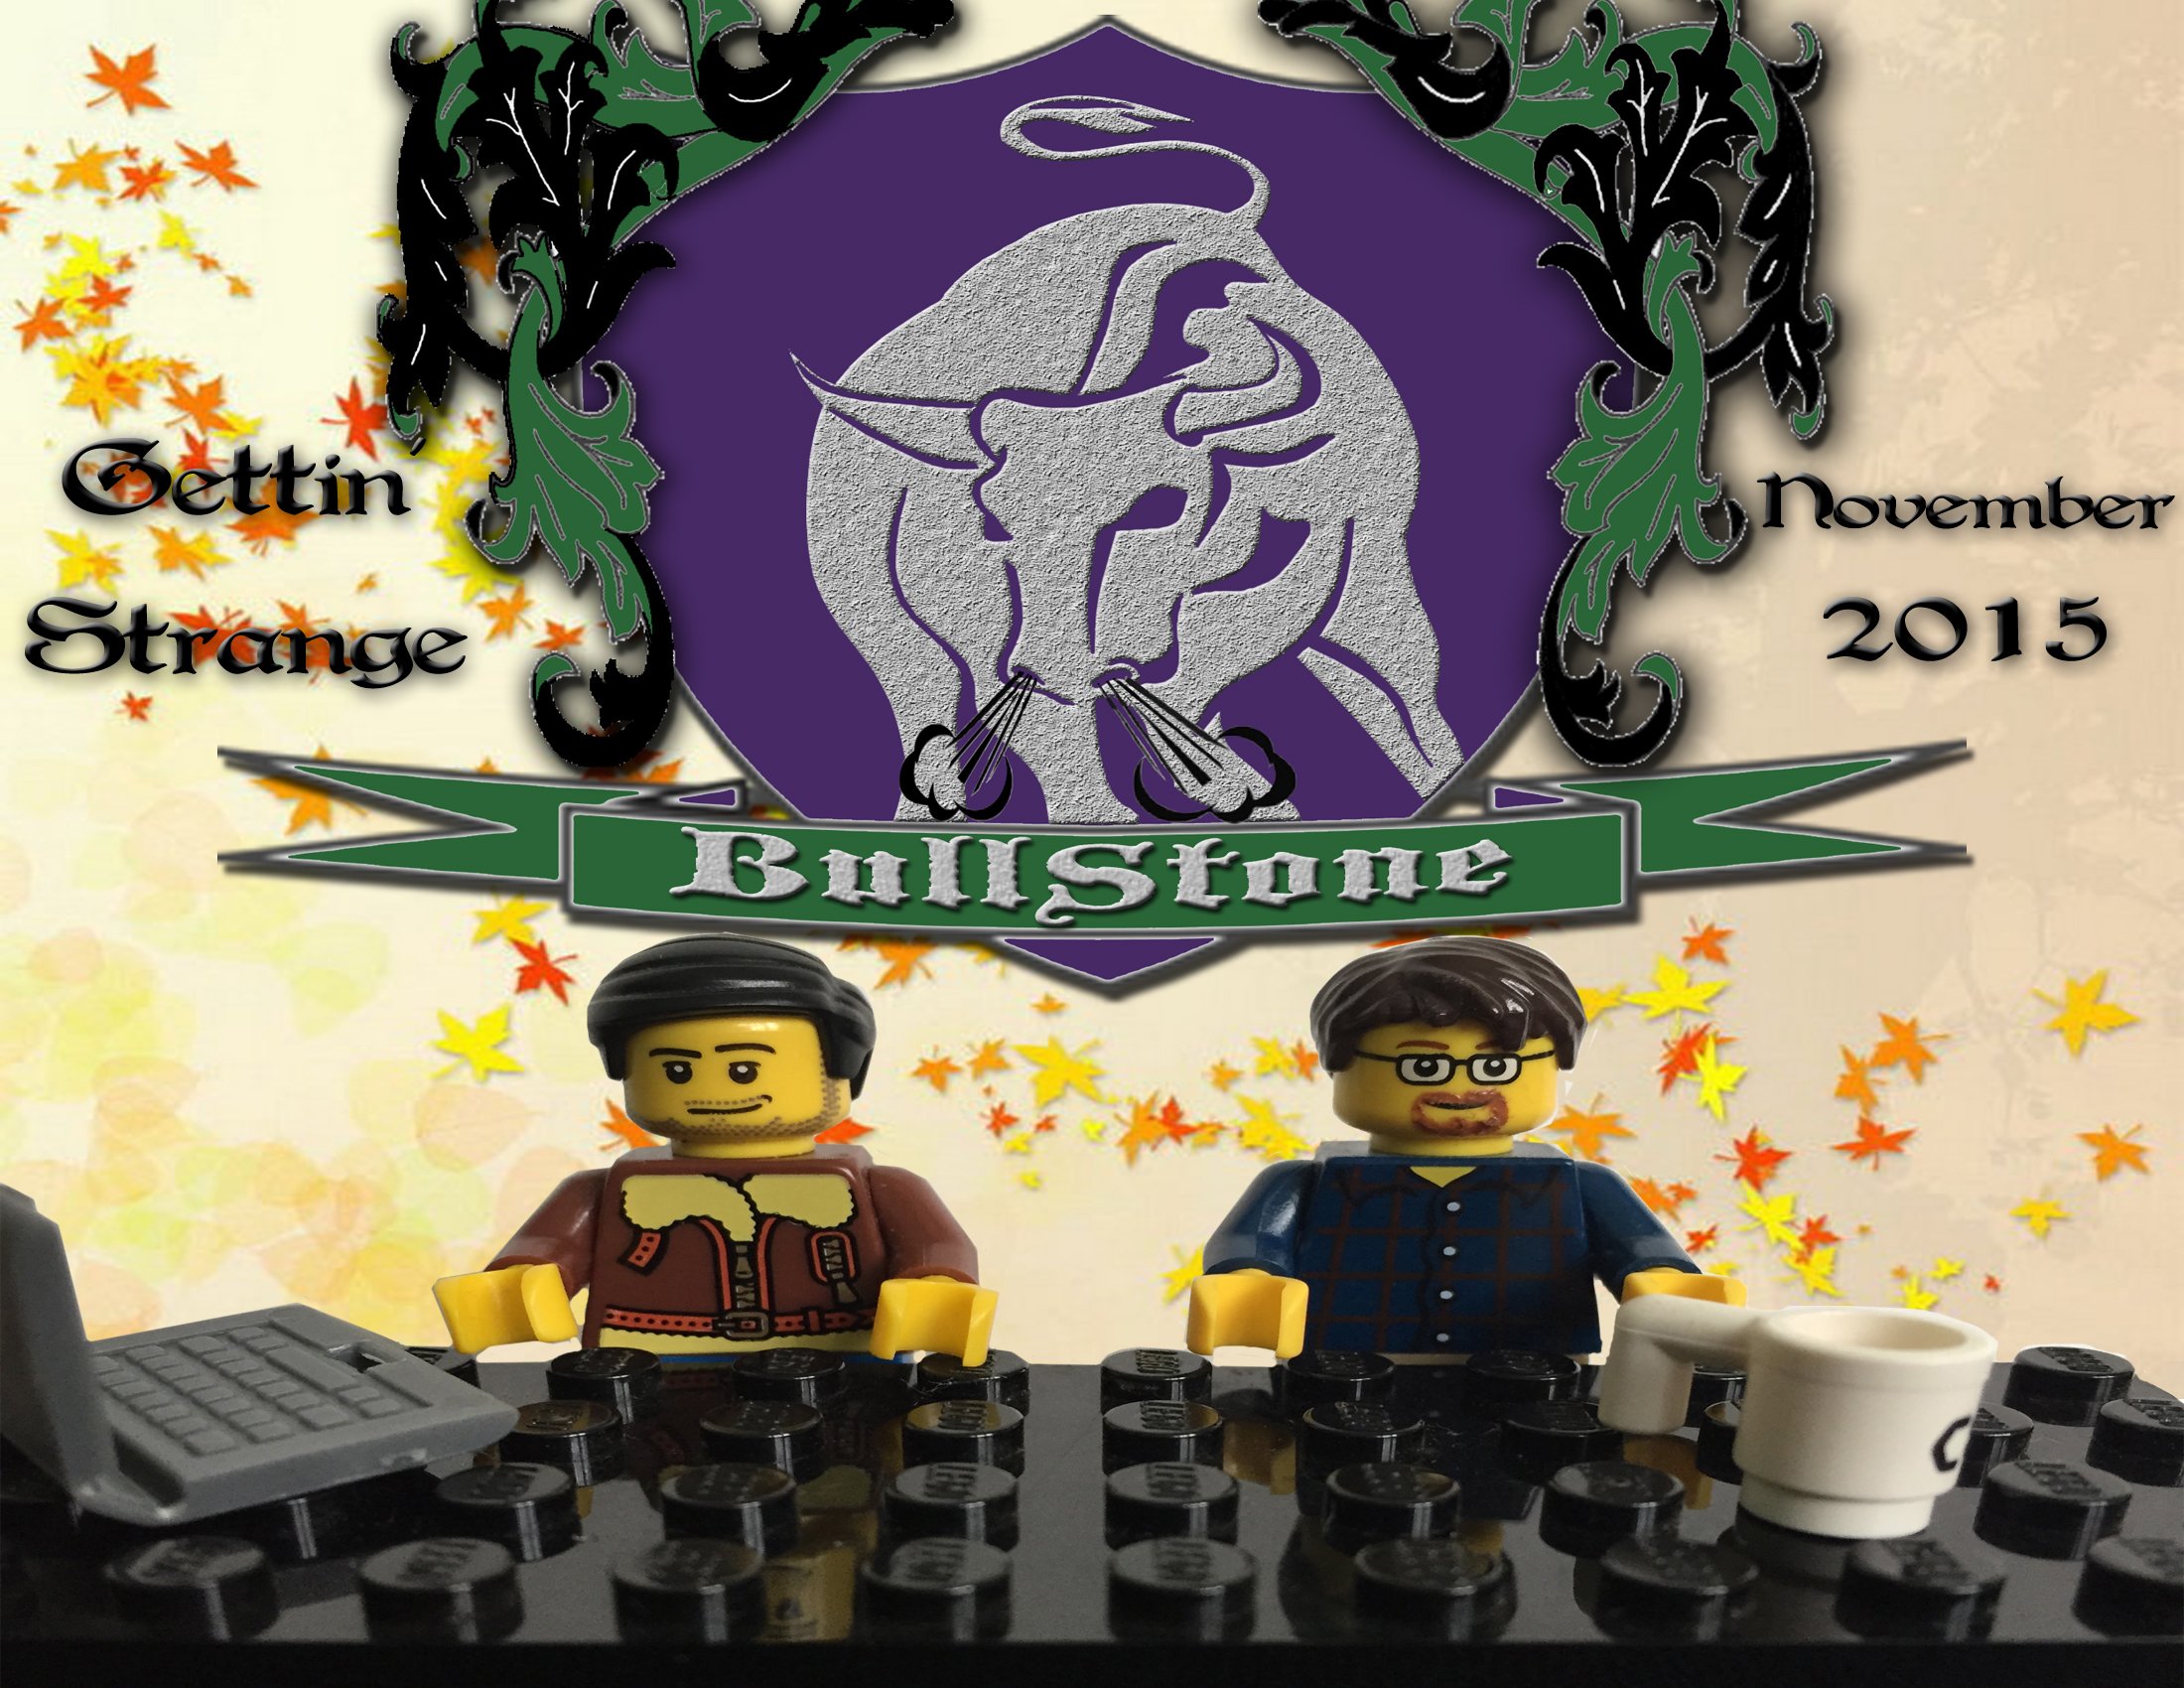 BullStone 11: Gettin' Strange, November 2015